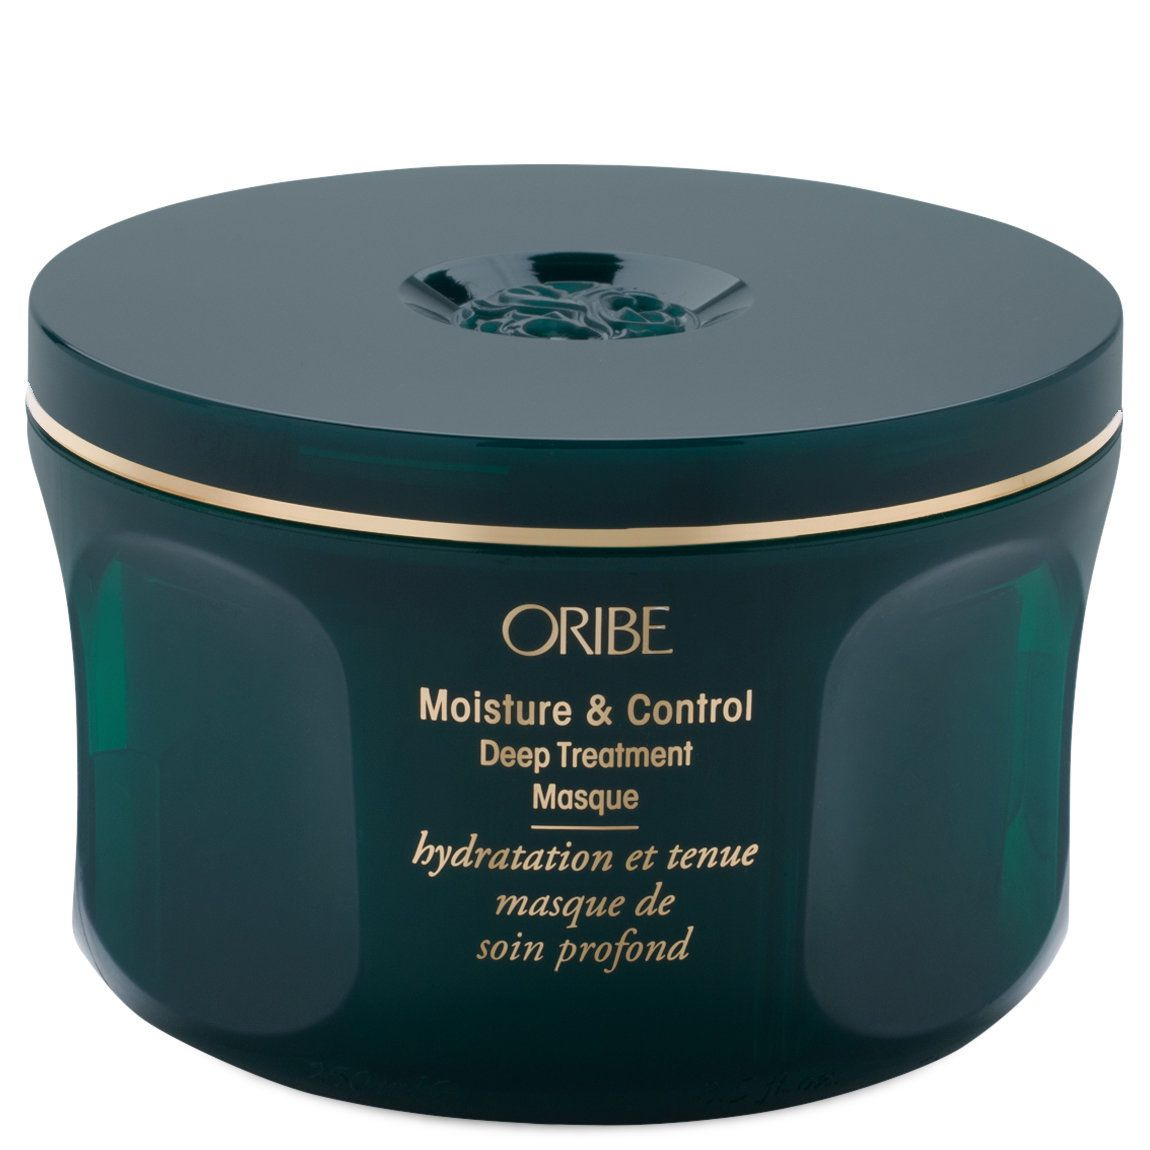 Oribe moisture and control deep treatment masque in green container